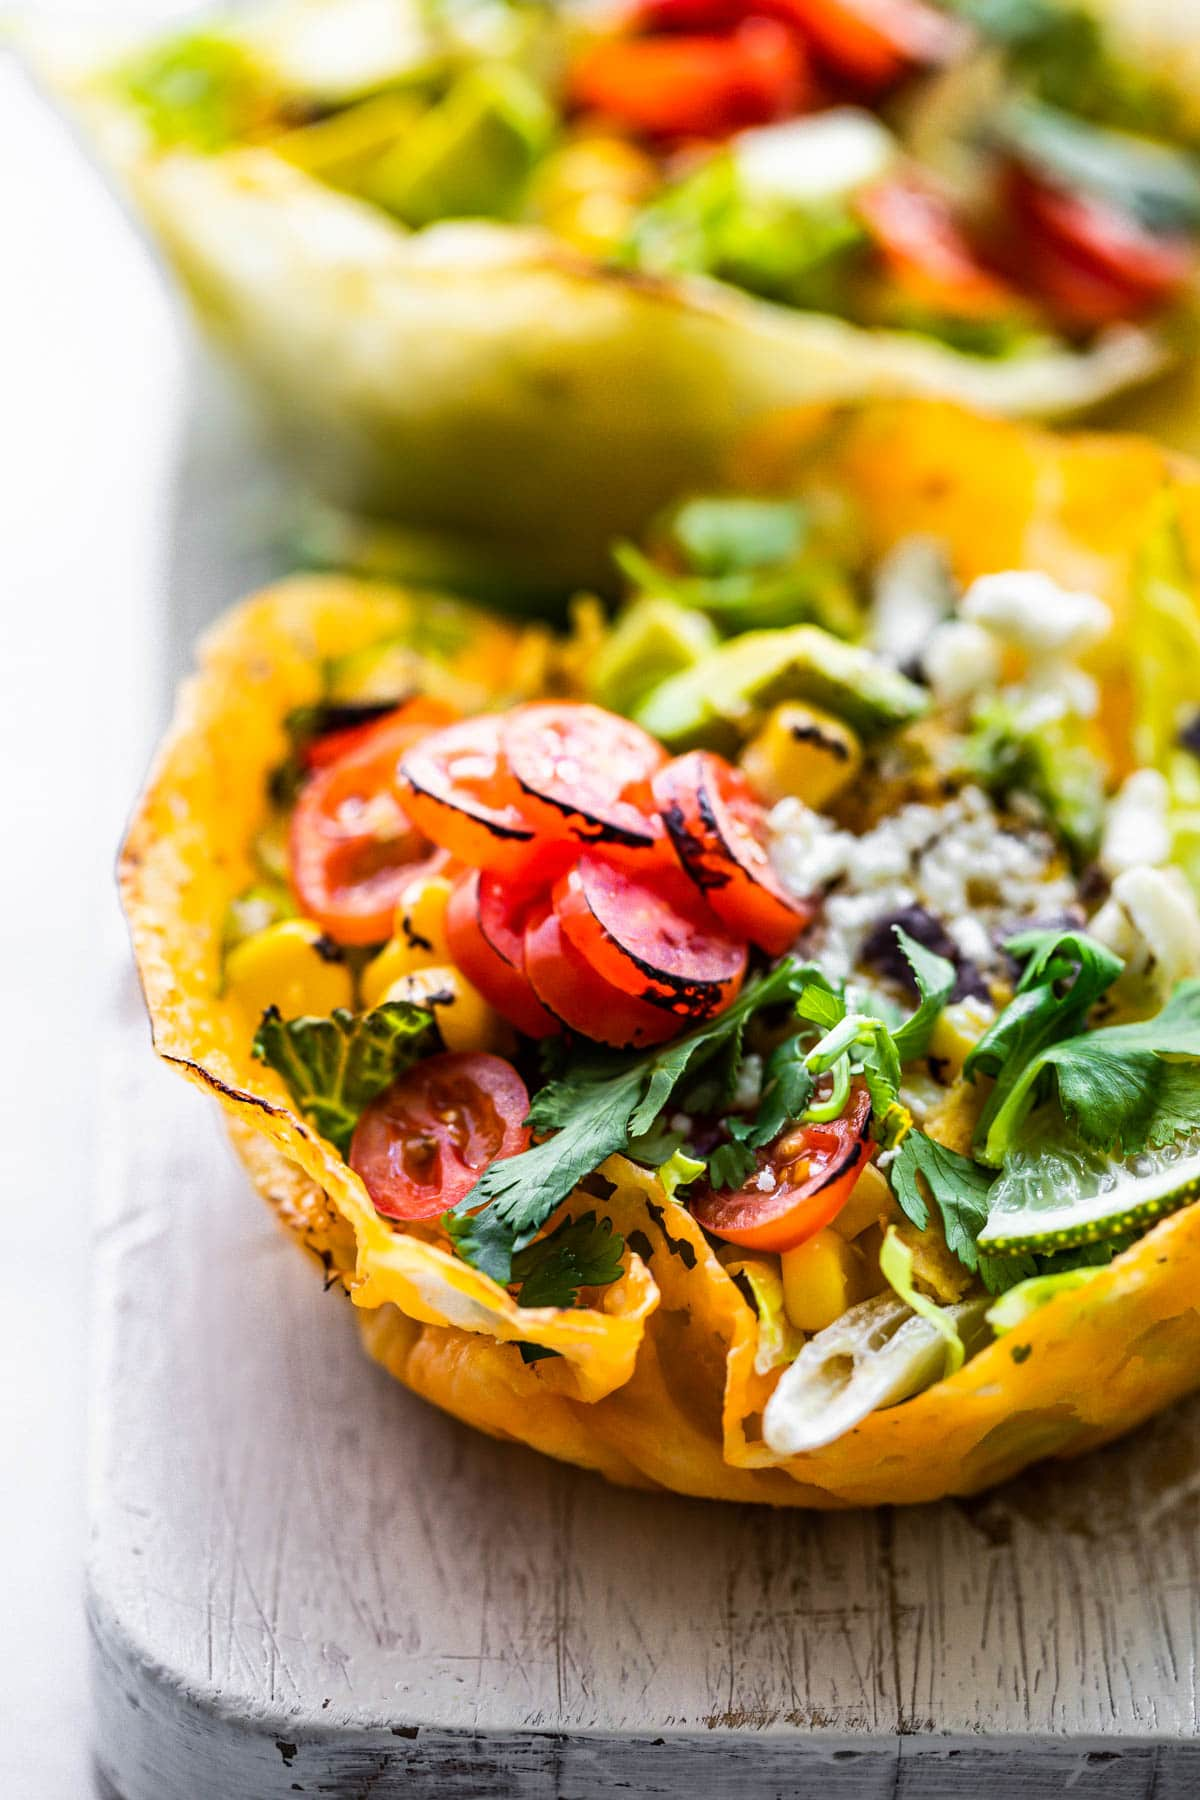 healthy salad with fresh vegetables in a baked cheese bowl